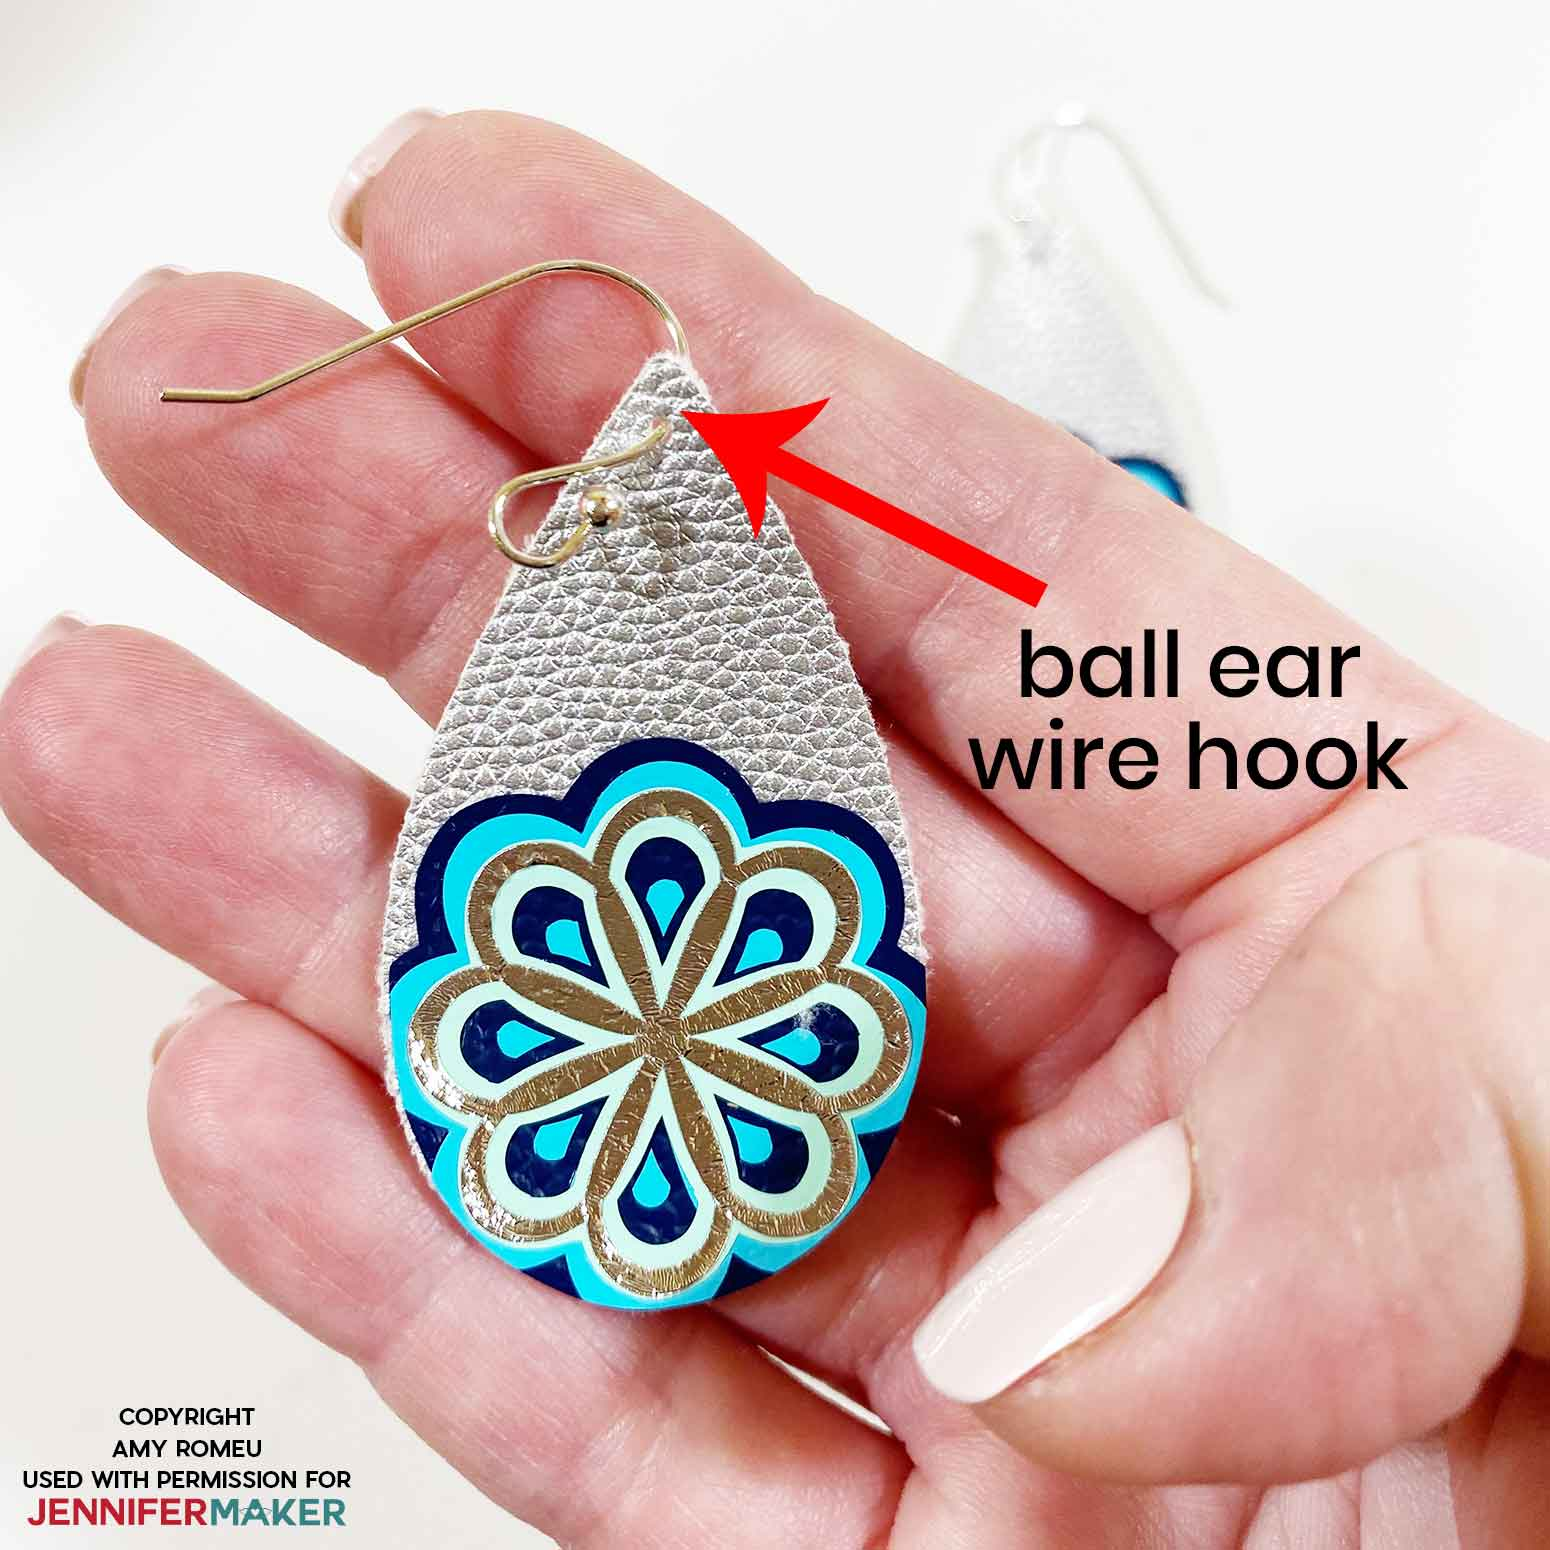 hanging earring with a ball ear wire hook